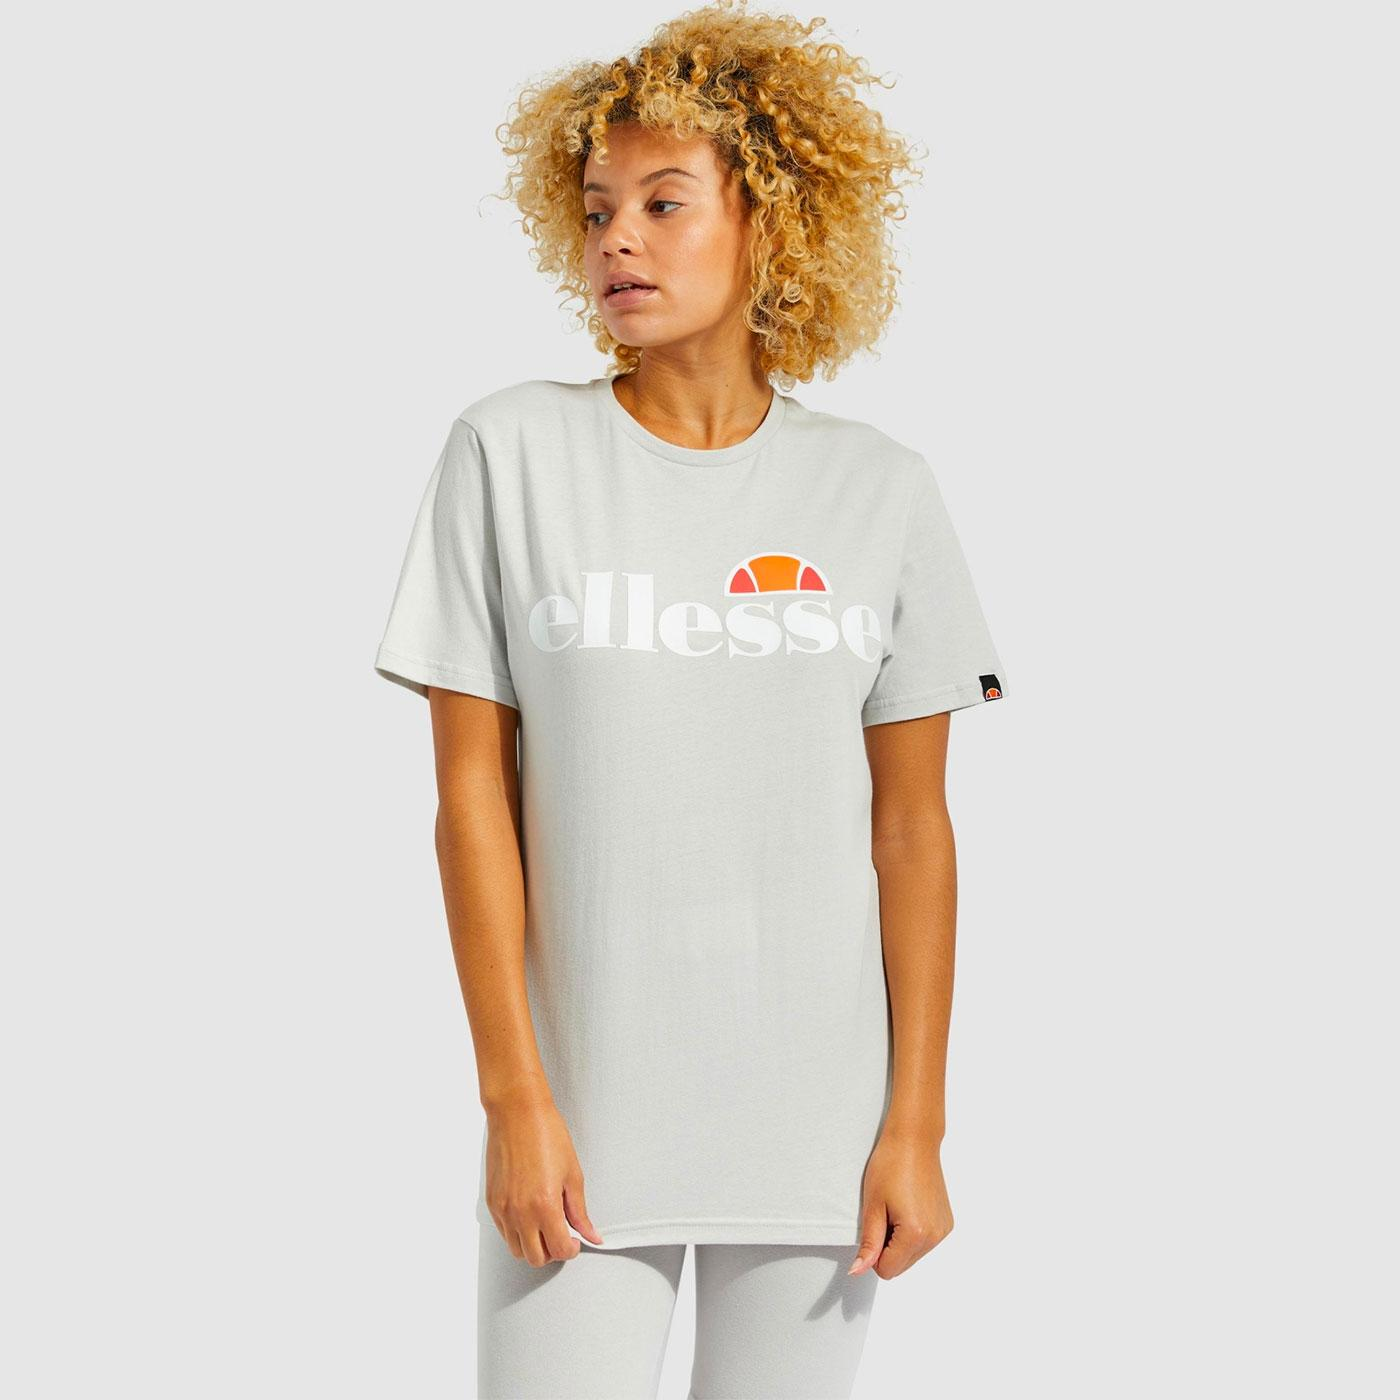 Albany ELLESSE Women's Retro Relaxed Fit Tee (LG)